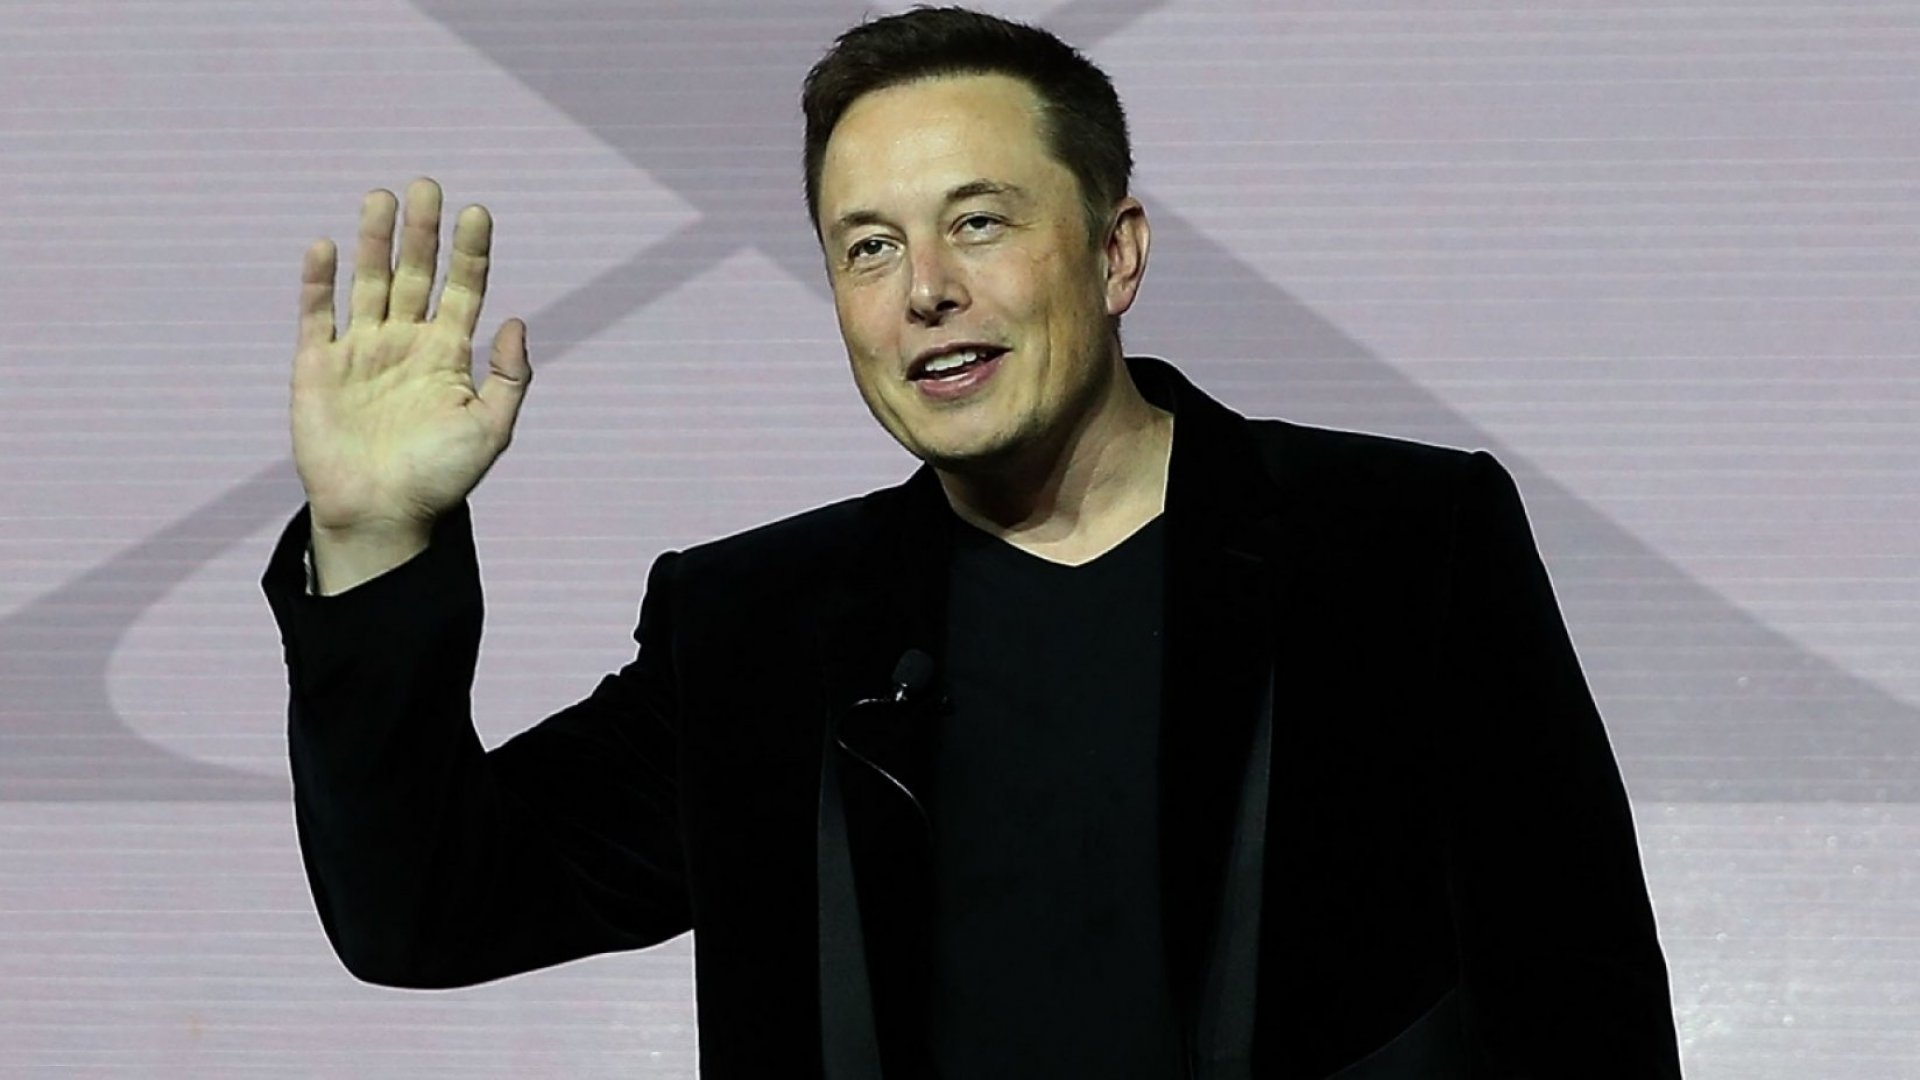 The 7 Biggest Moments of Elon Musk's Extraordinary Career